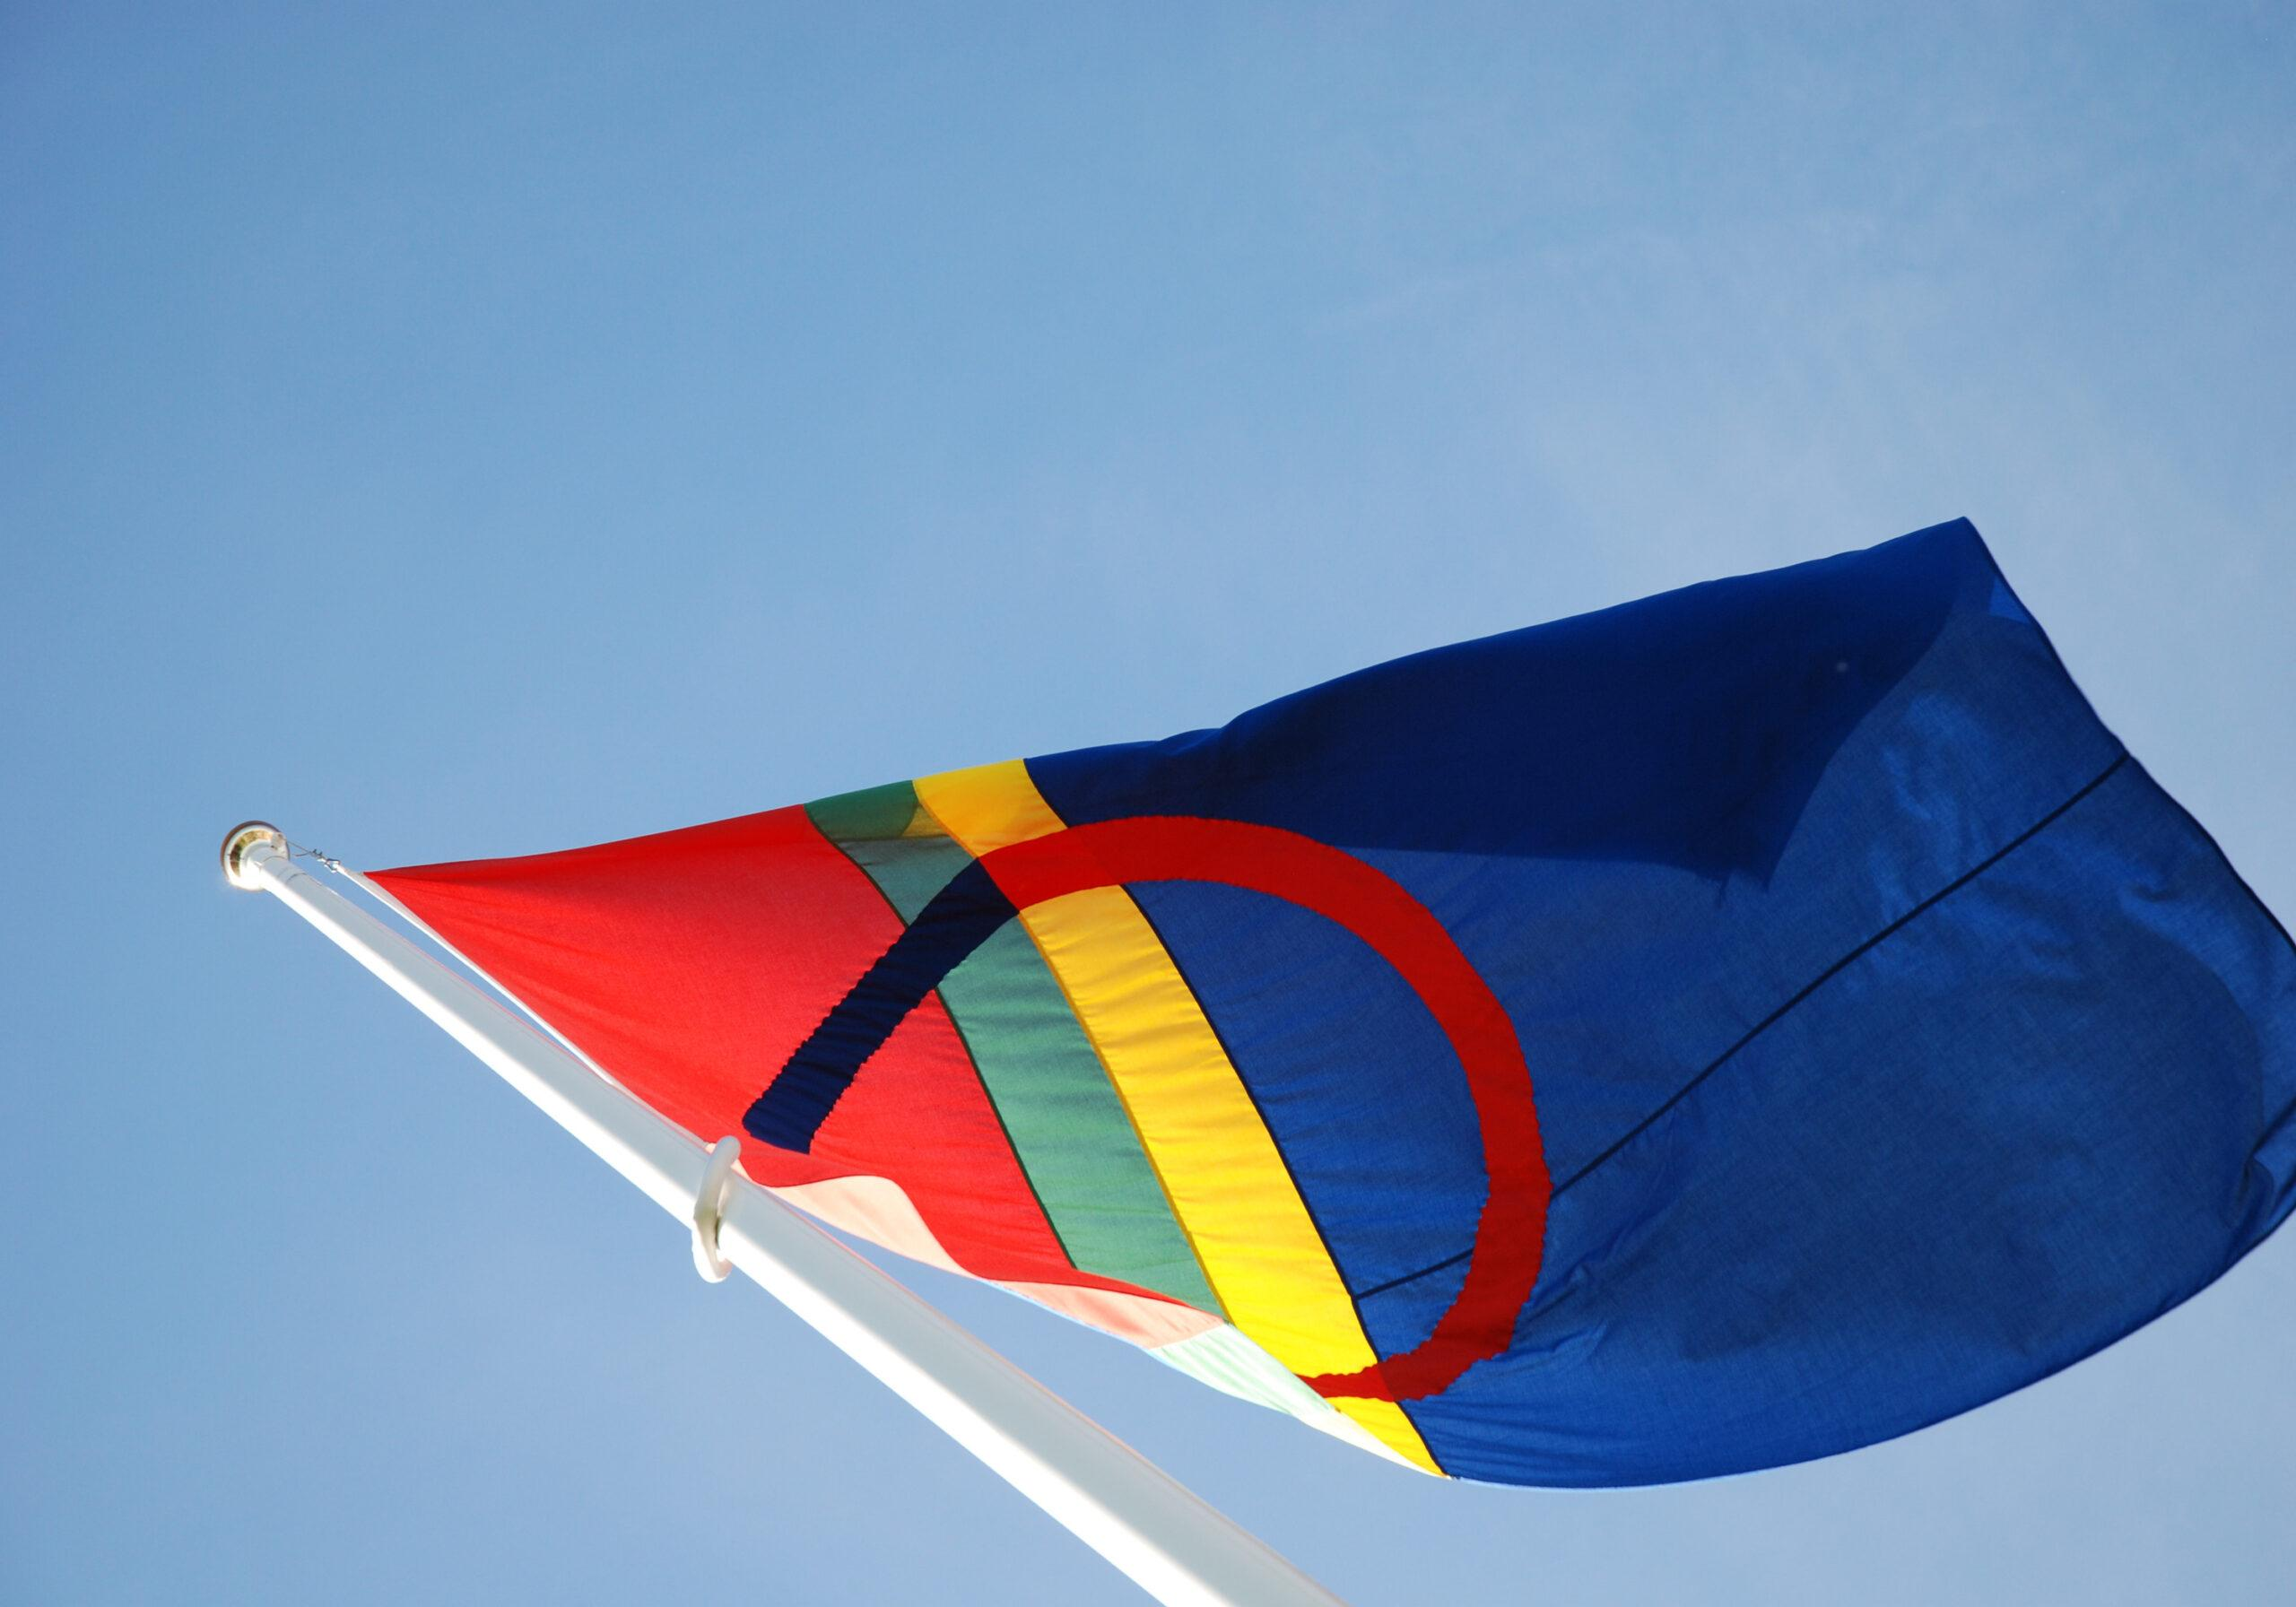 The Sami flag - red, blue, green and yellow – blowing in the wind.